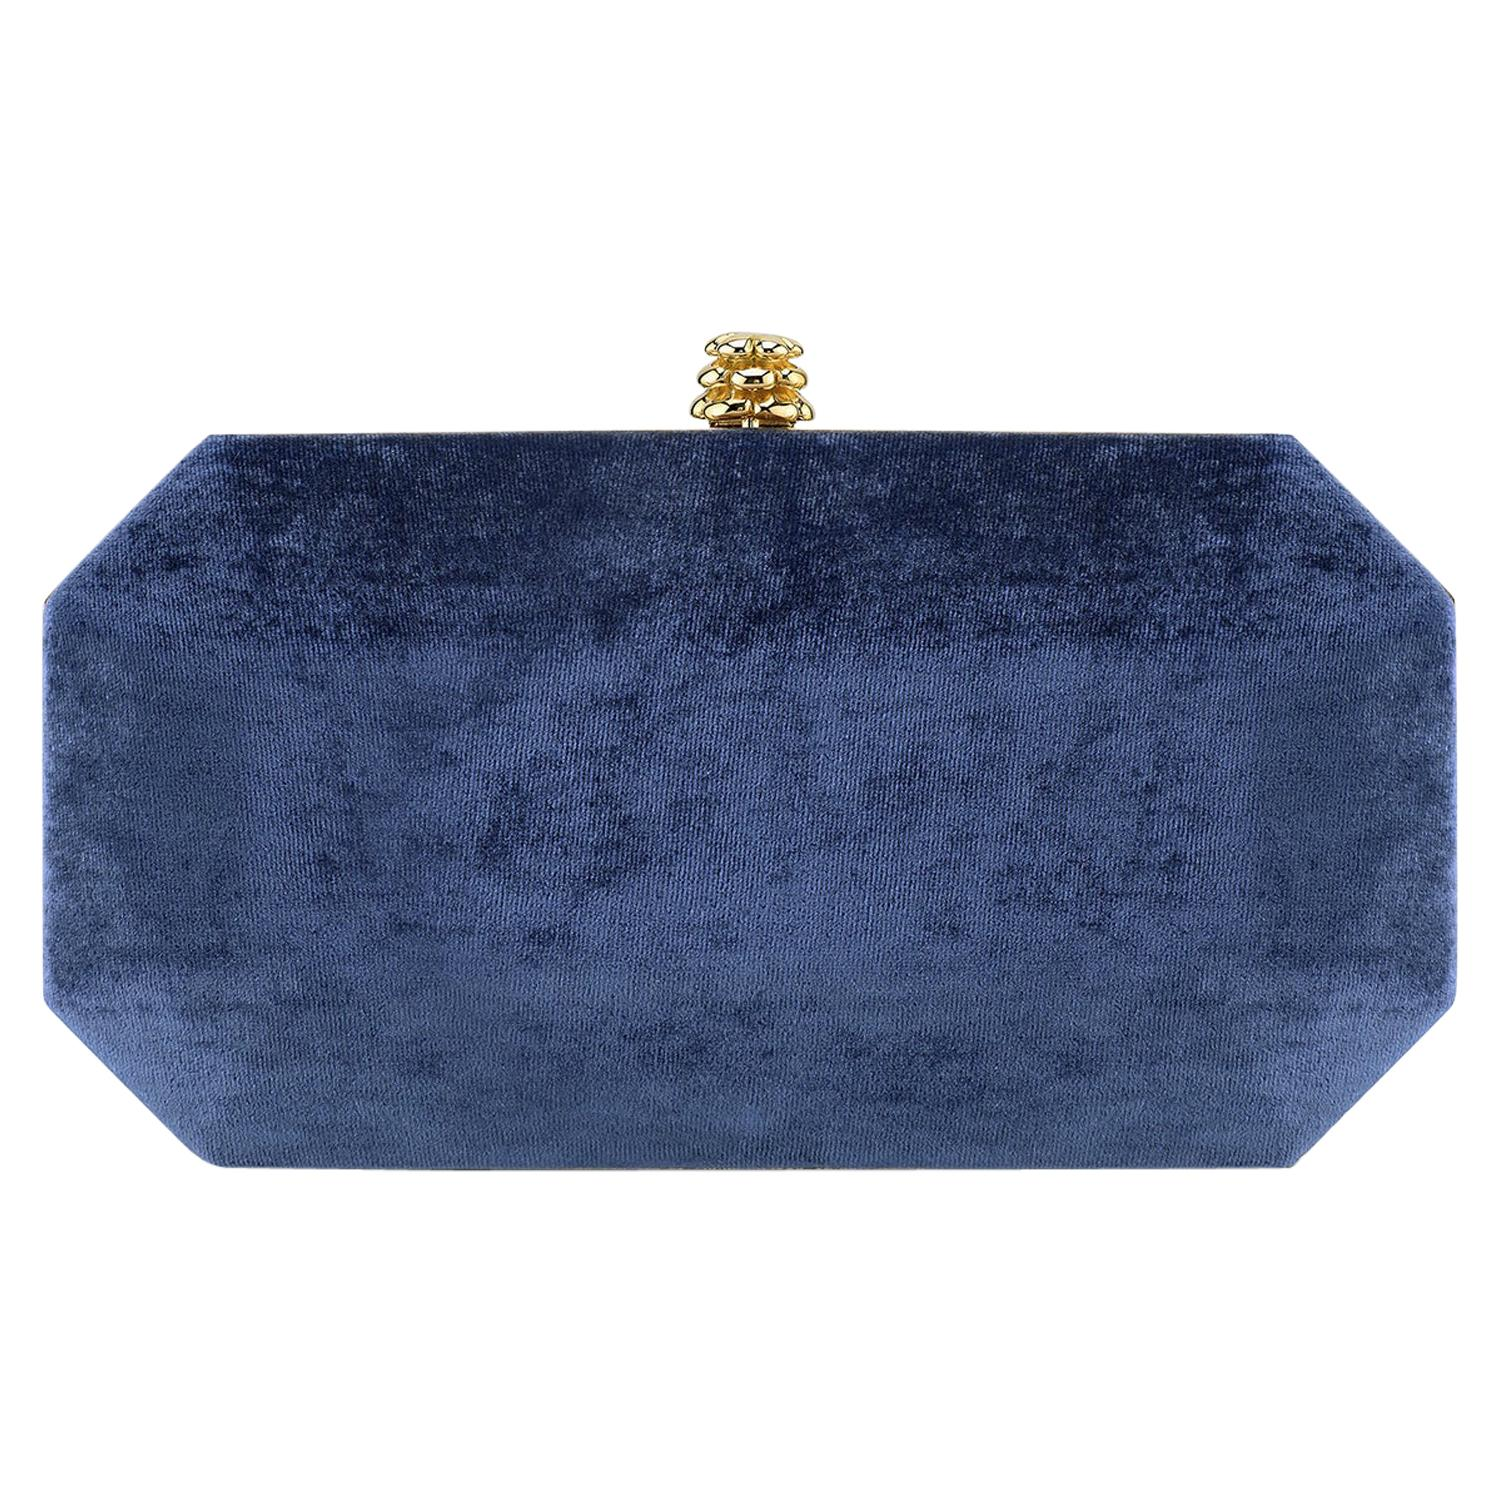 TYLER ELLIS Perry Small Clutch Navy Blue Crushed Velvet Gold Hardware